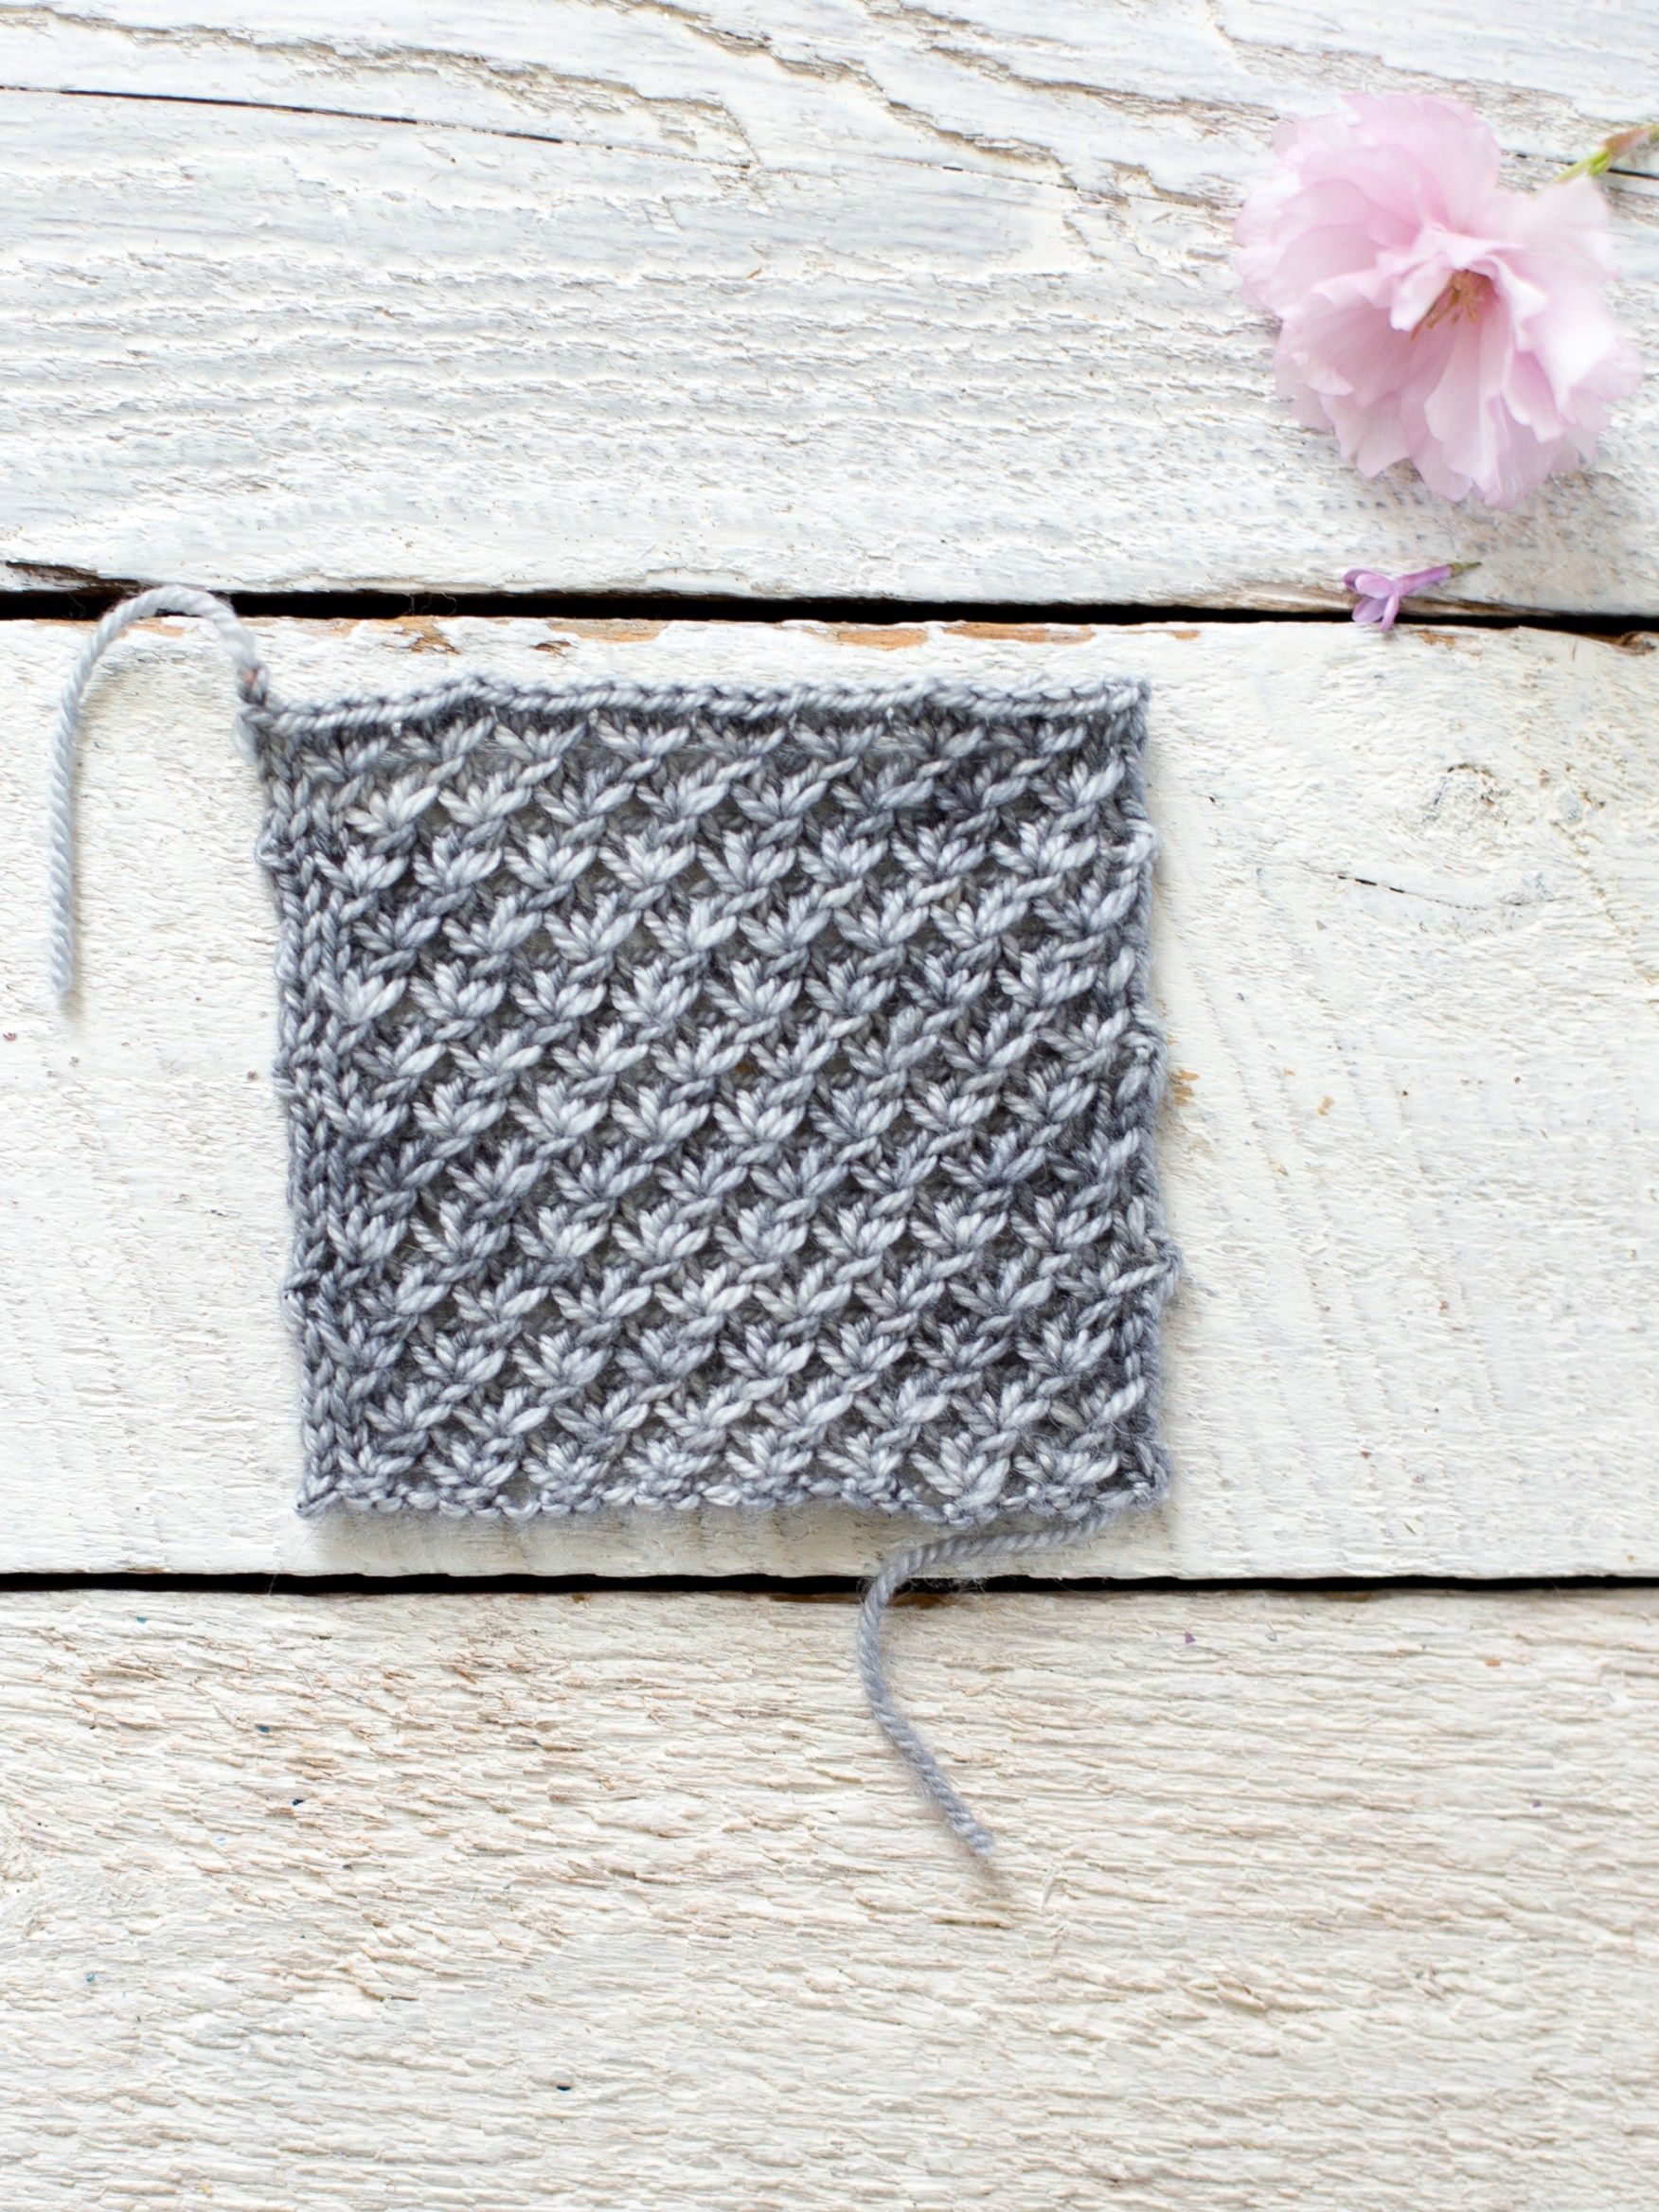 How To Make An Easy Lace Knit Shawl Pattern   Lace knitting, Knit ...